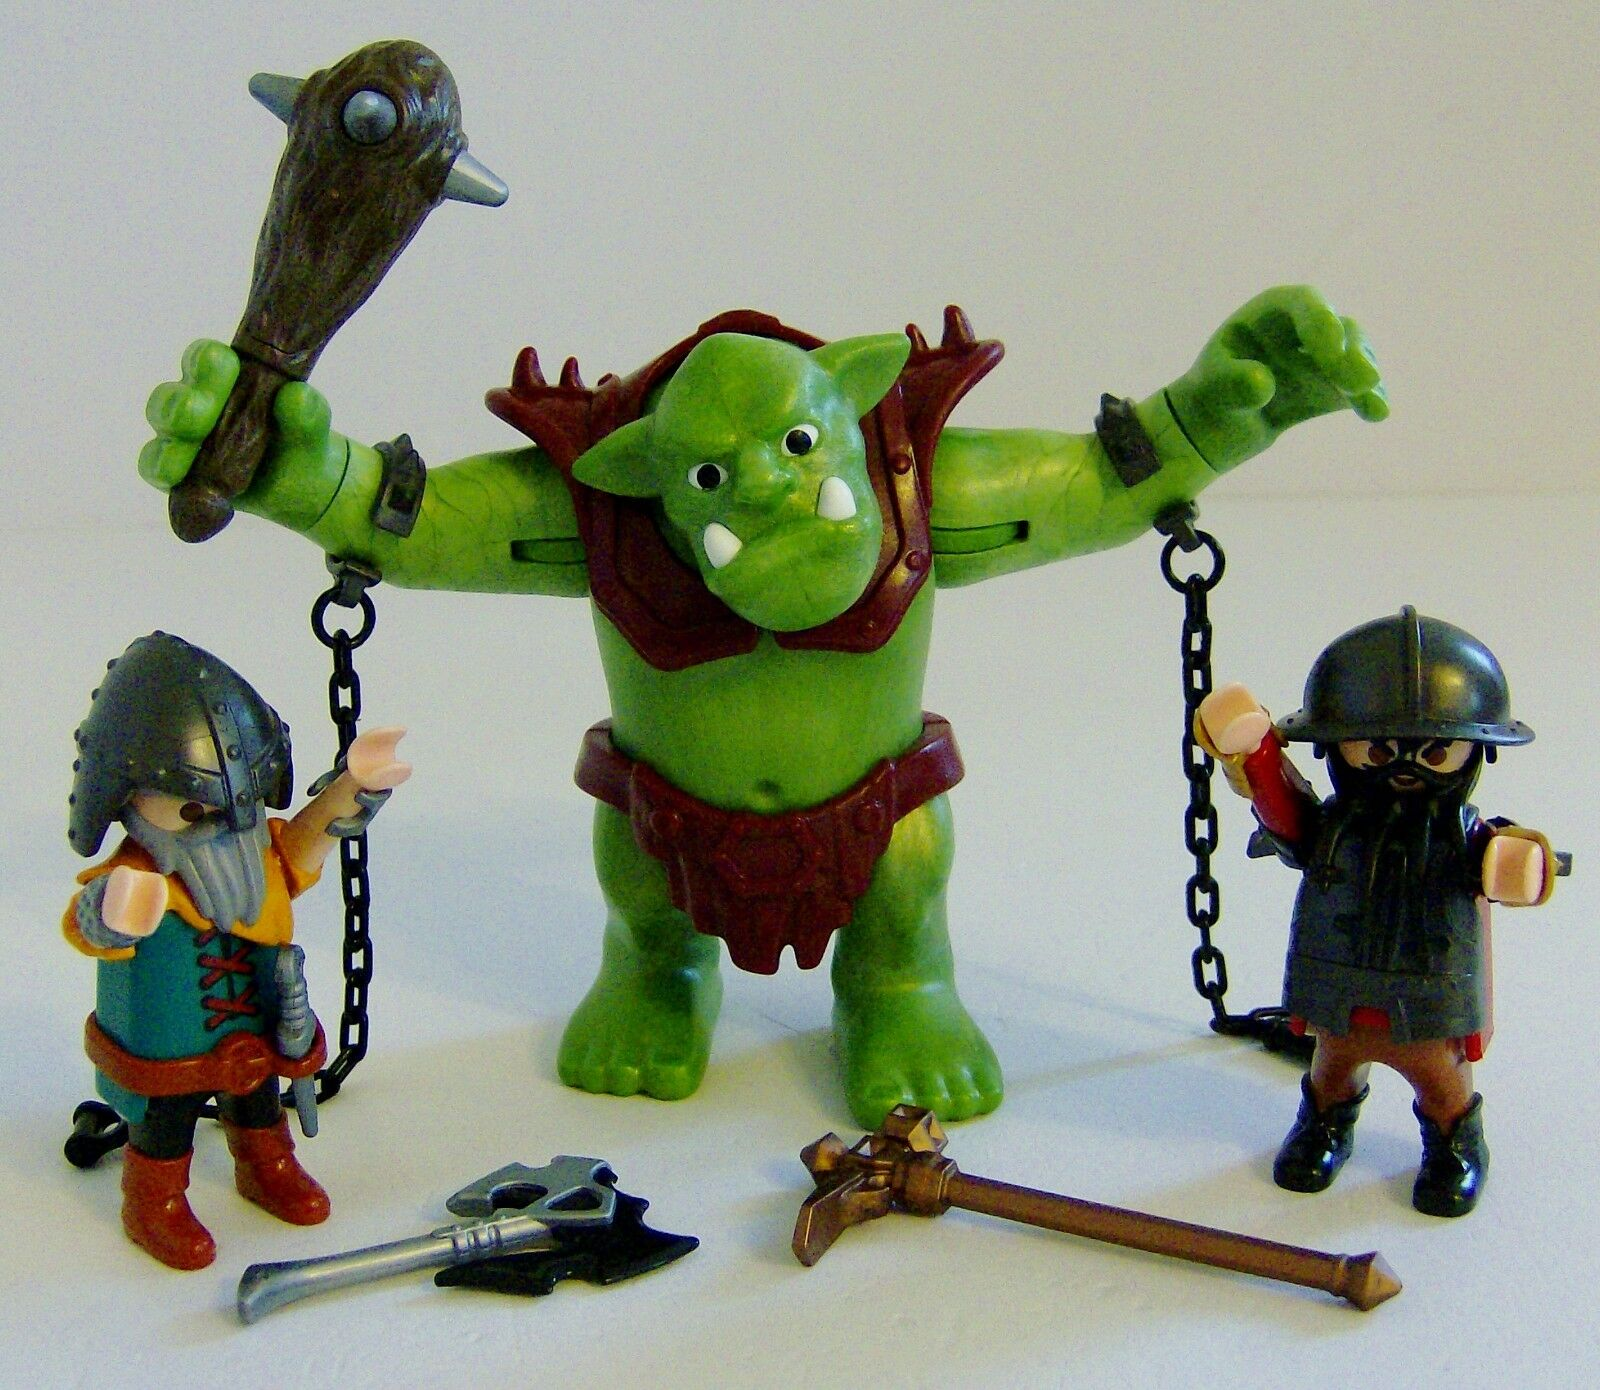 Playmobil Knights Giant Troll with Dwarf Fighter Figures 6004